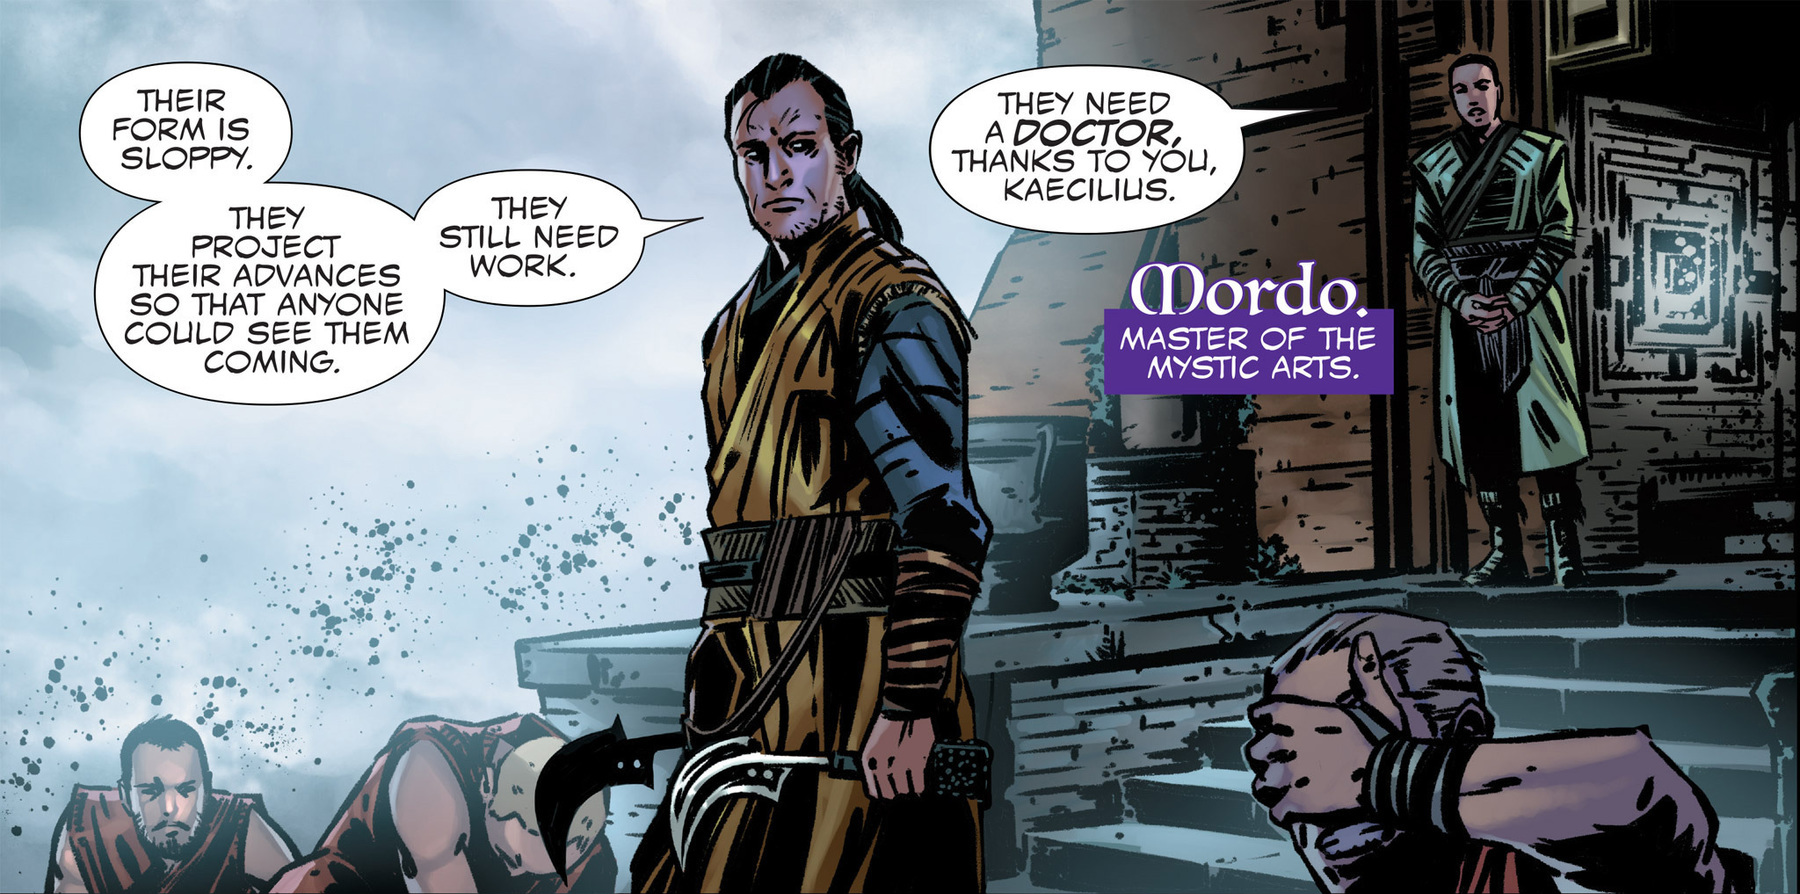 doctor strange Kaecilius_and_Mordo comics adaptatiion tie-in